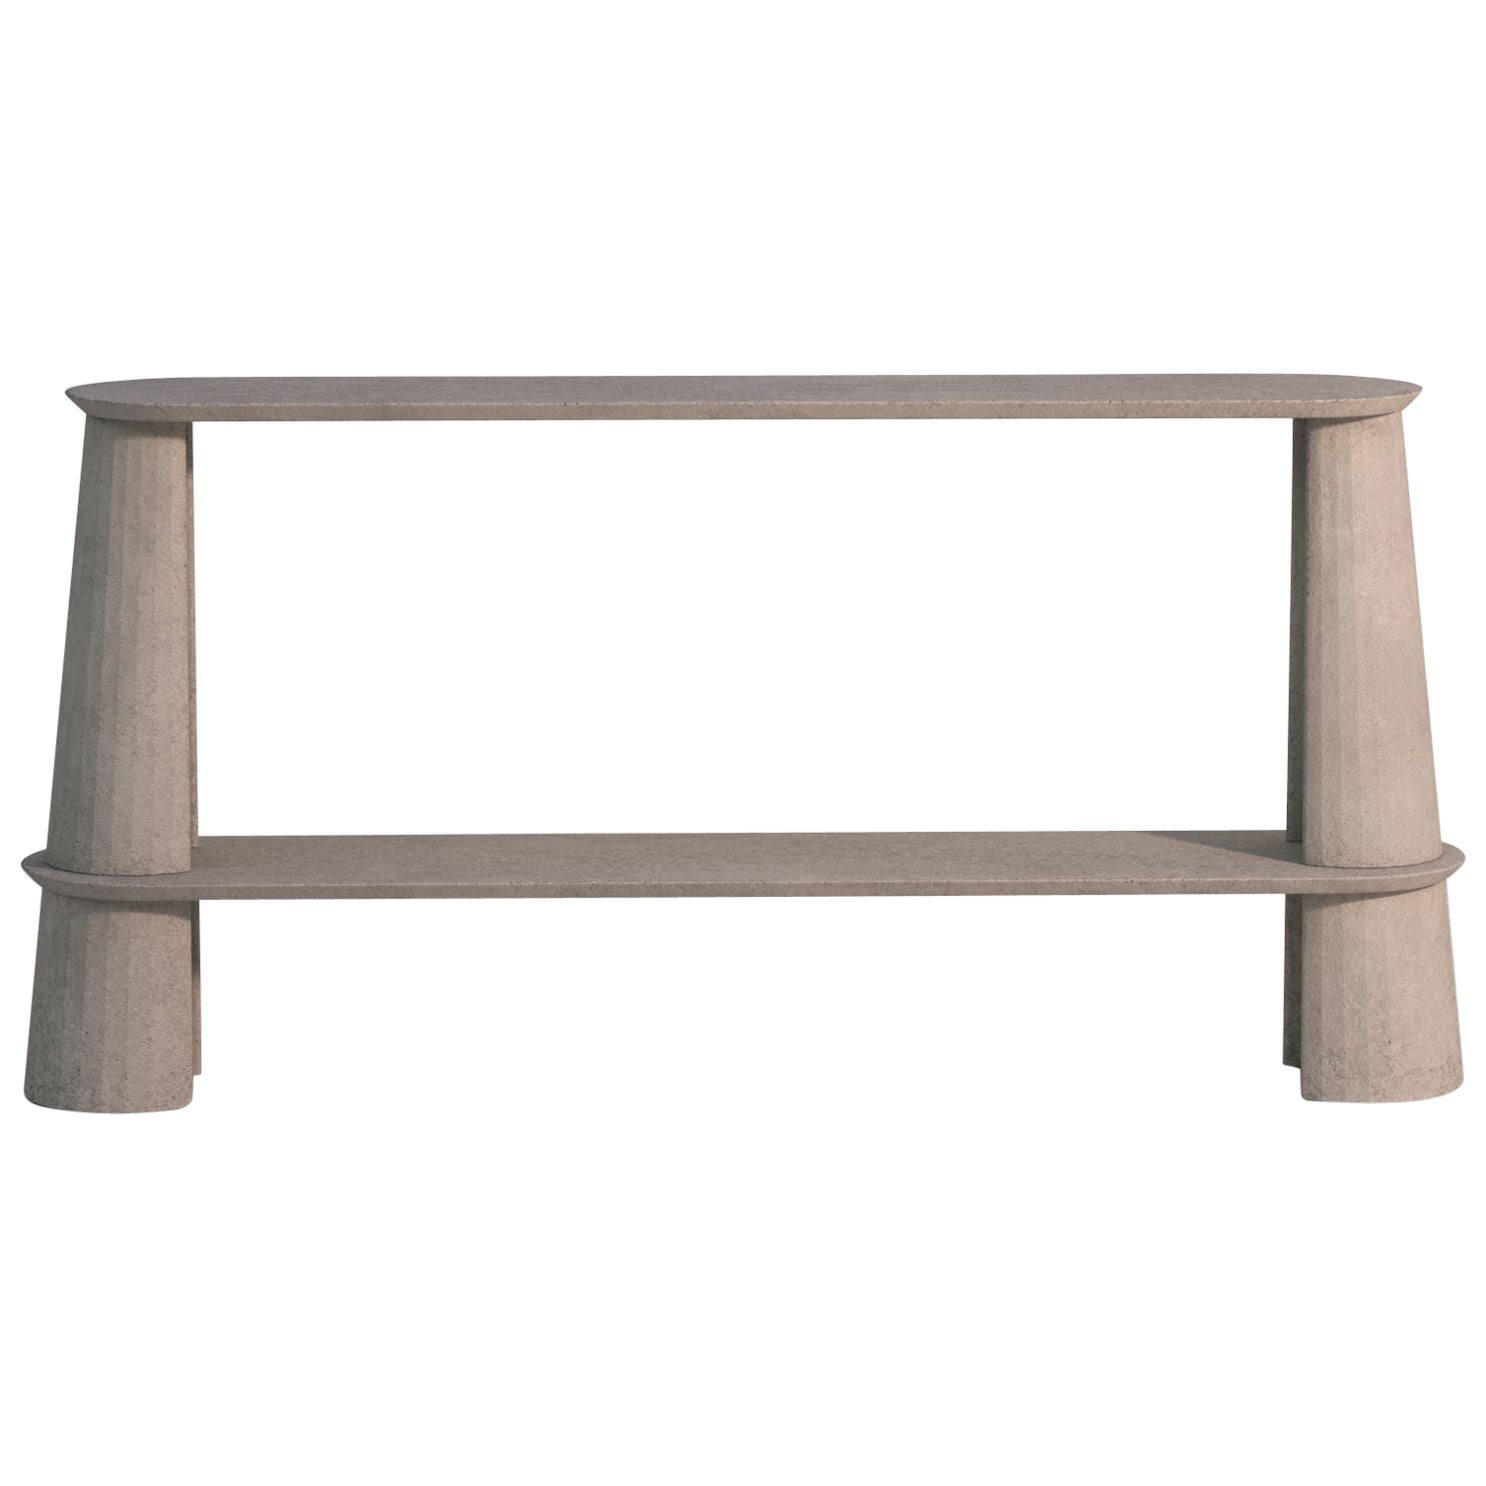 21st Century Studio Irvine Fusto Side Console Table Concrete Cement Powder Beige